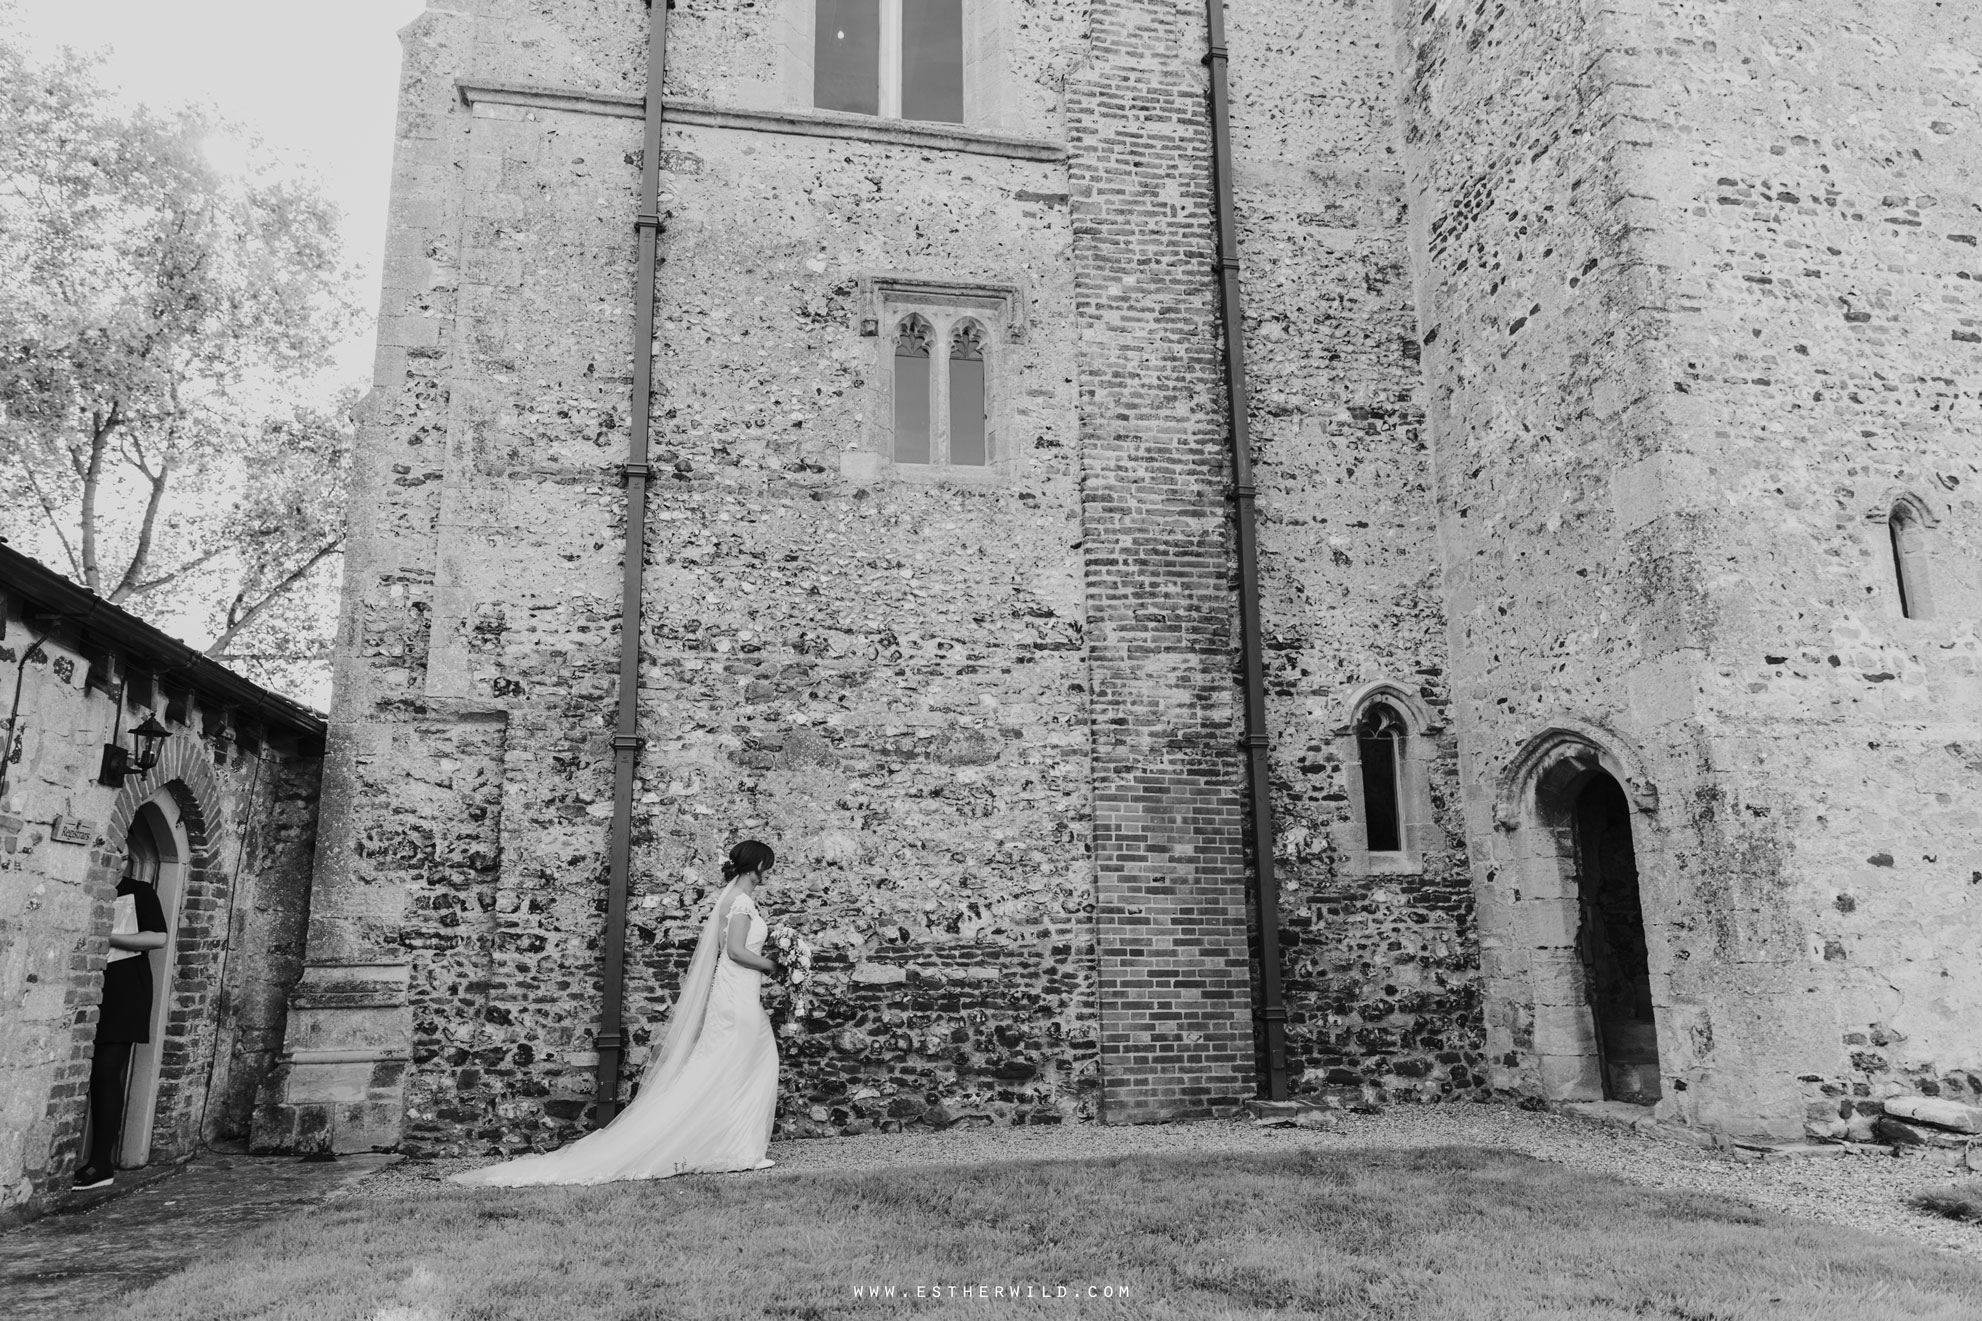 Pentney_Abbey_Wedding_Kings_Lynn_Norfolk_Esther_Wild_Wedding_Photography_IMG_0479.jpg